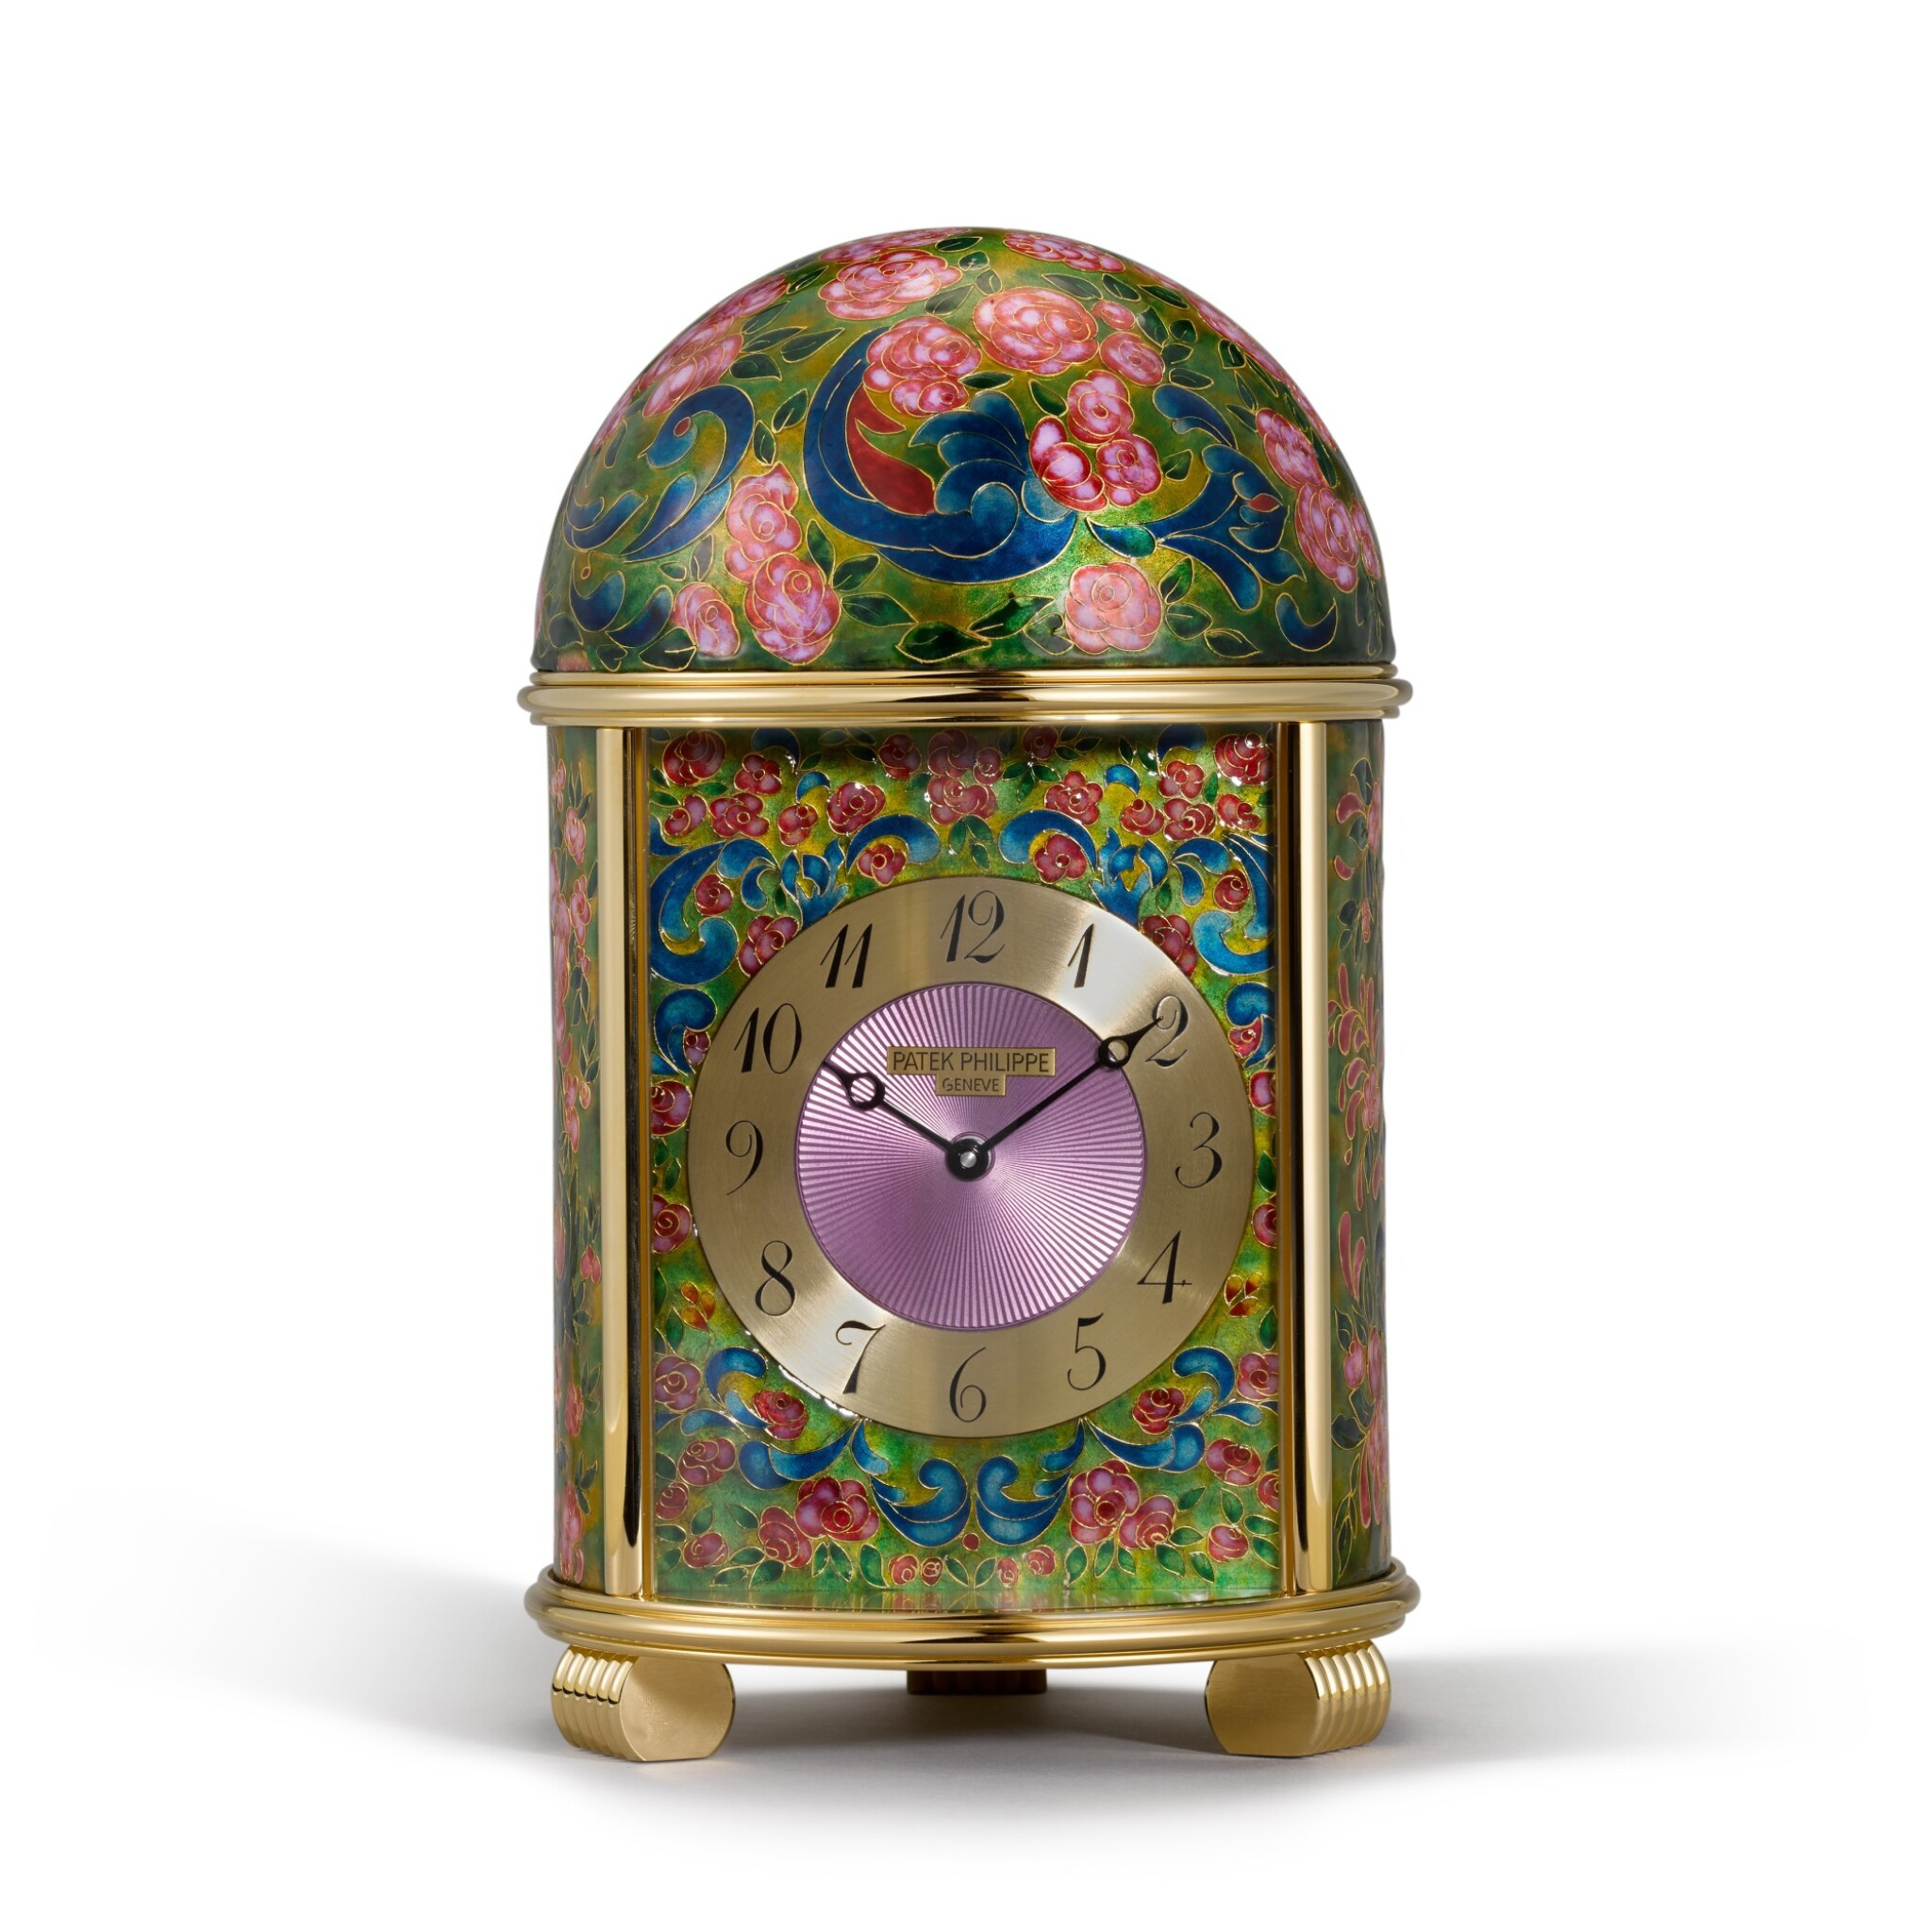 View full screen - View 1 of Lot 1. The Rose Garden, Ref. 1612M A Unique Gilt Metal And Cloisonné Enamel Dome Clock Circa 2011.